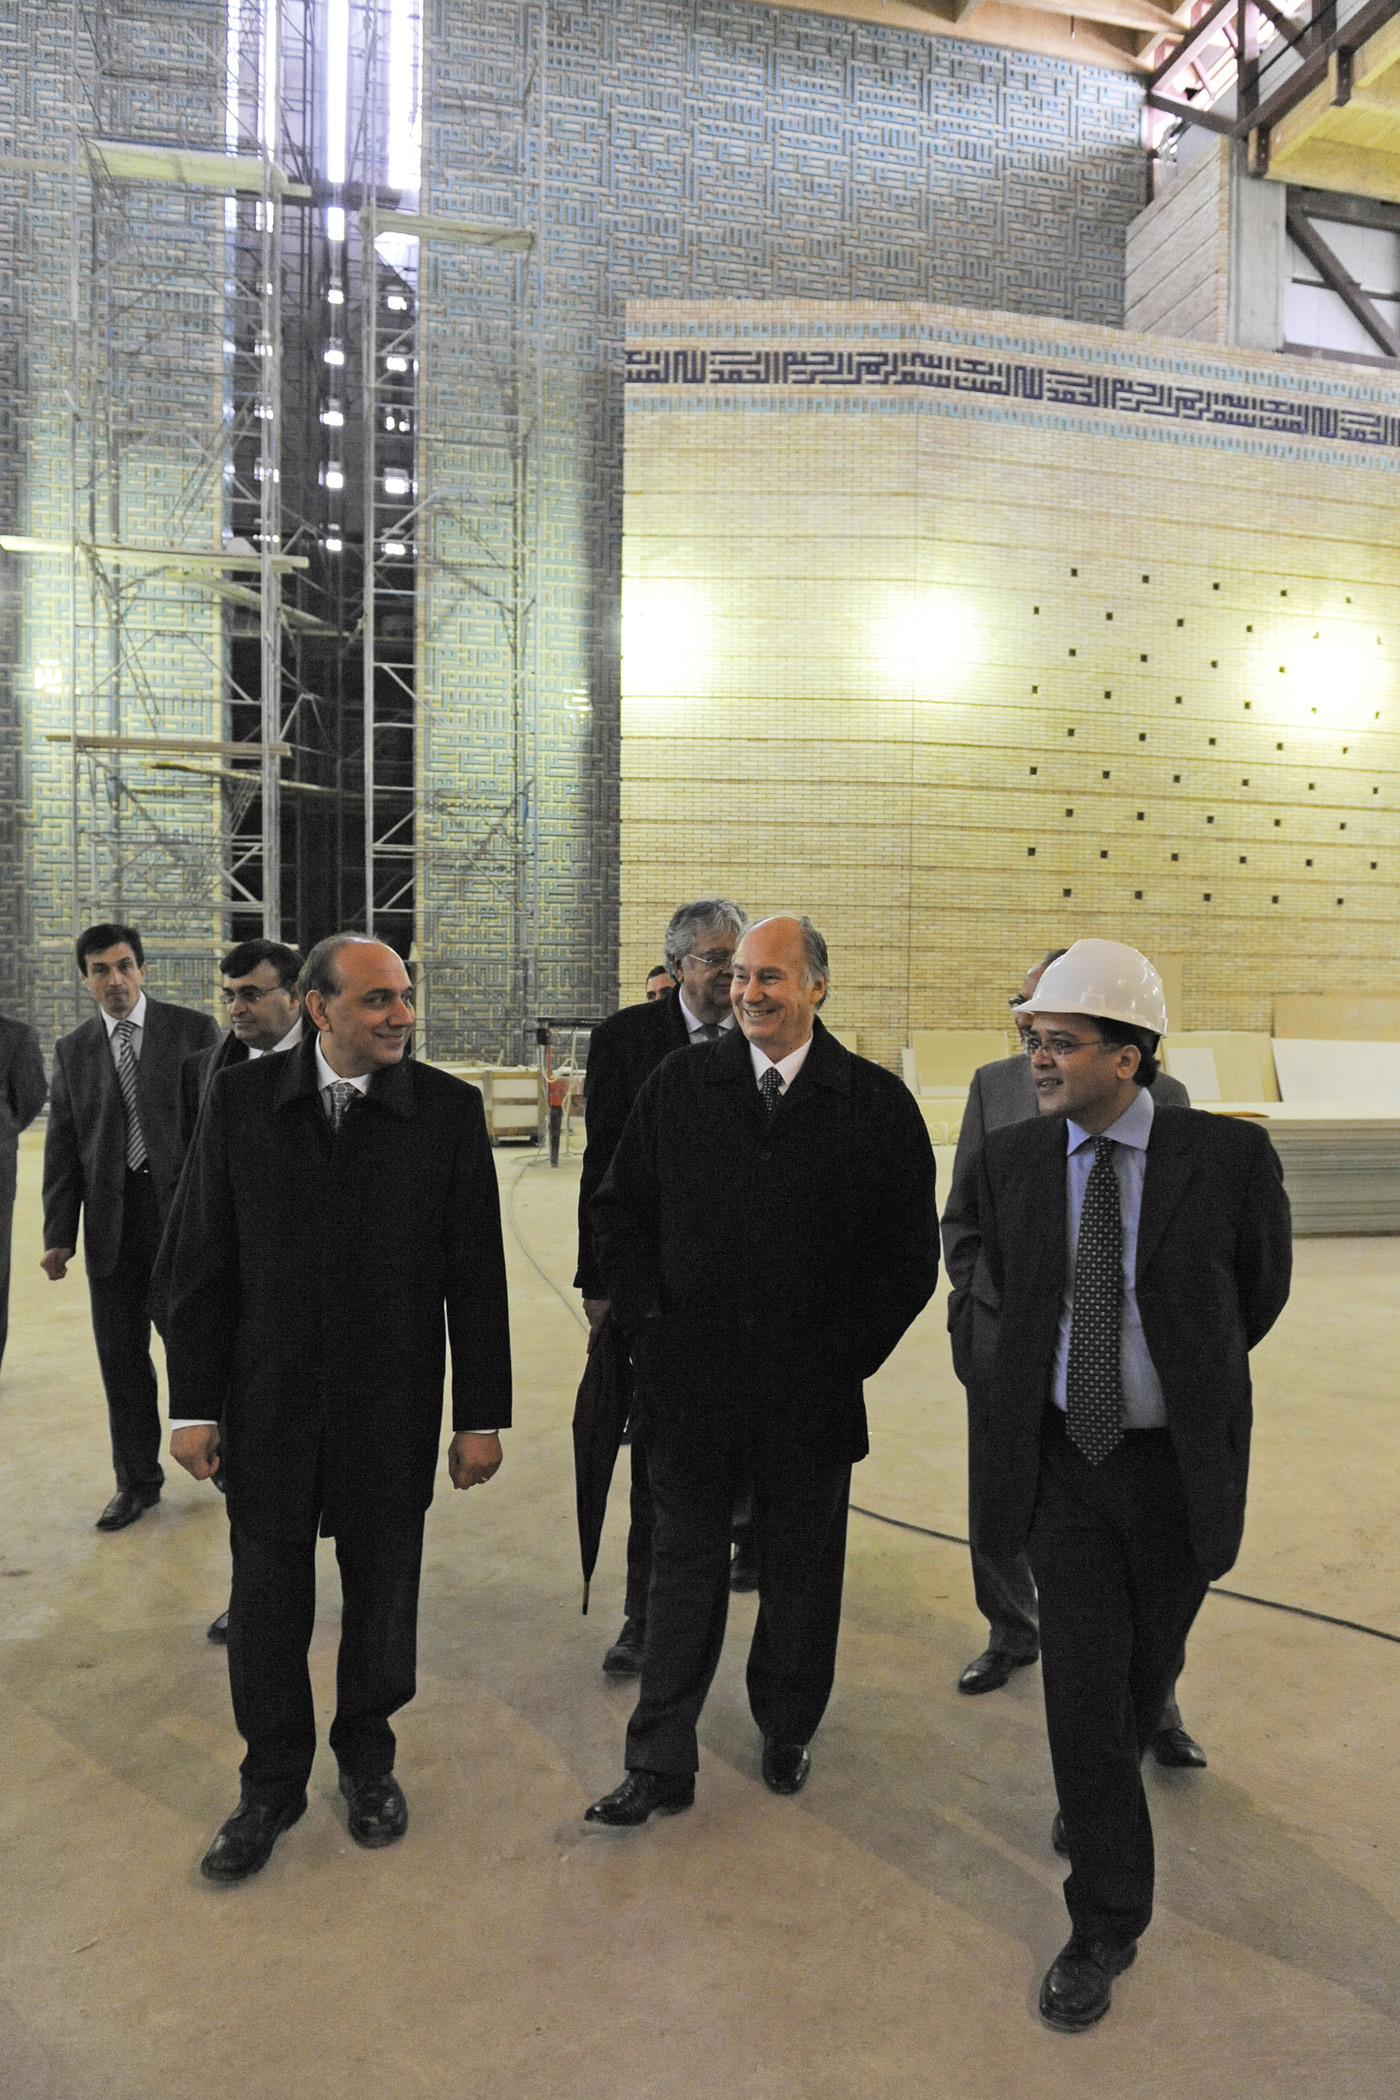 Mawlana Hazar Imam tours the prayer hall of the soon to be completed Ismaili Centre Dushanbe. He is accompanied by the building's Chief Architect and the Project Manager. Photo: Gary Otte